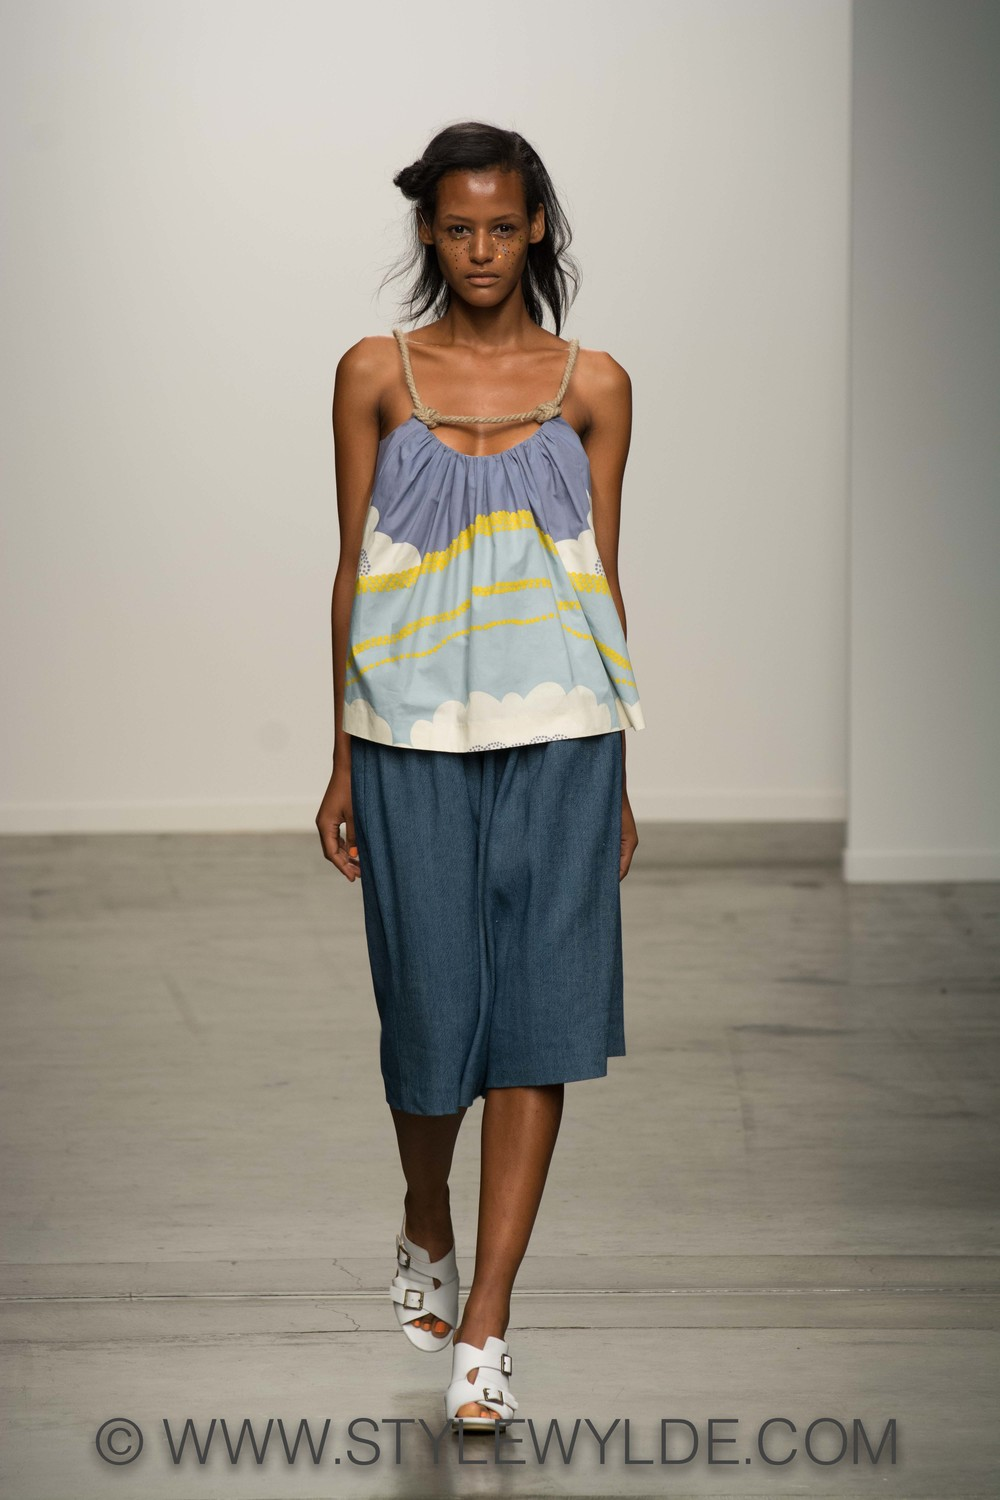 StyleWylde_adetacher_FOH_SS15_sw (21 of 37).jpg